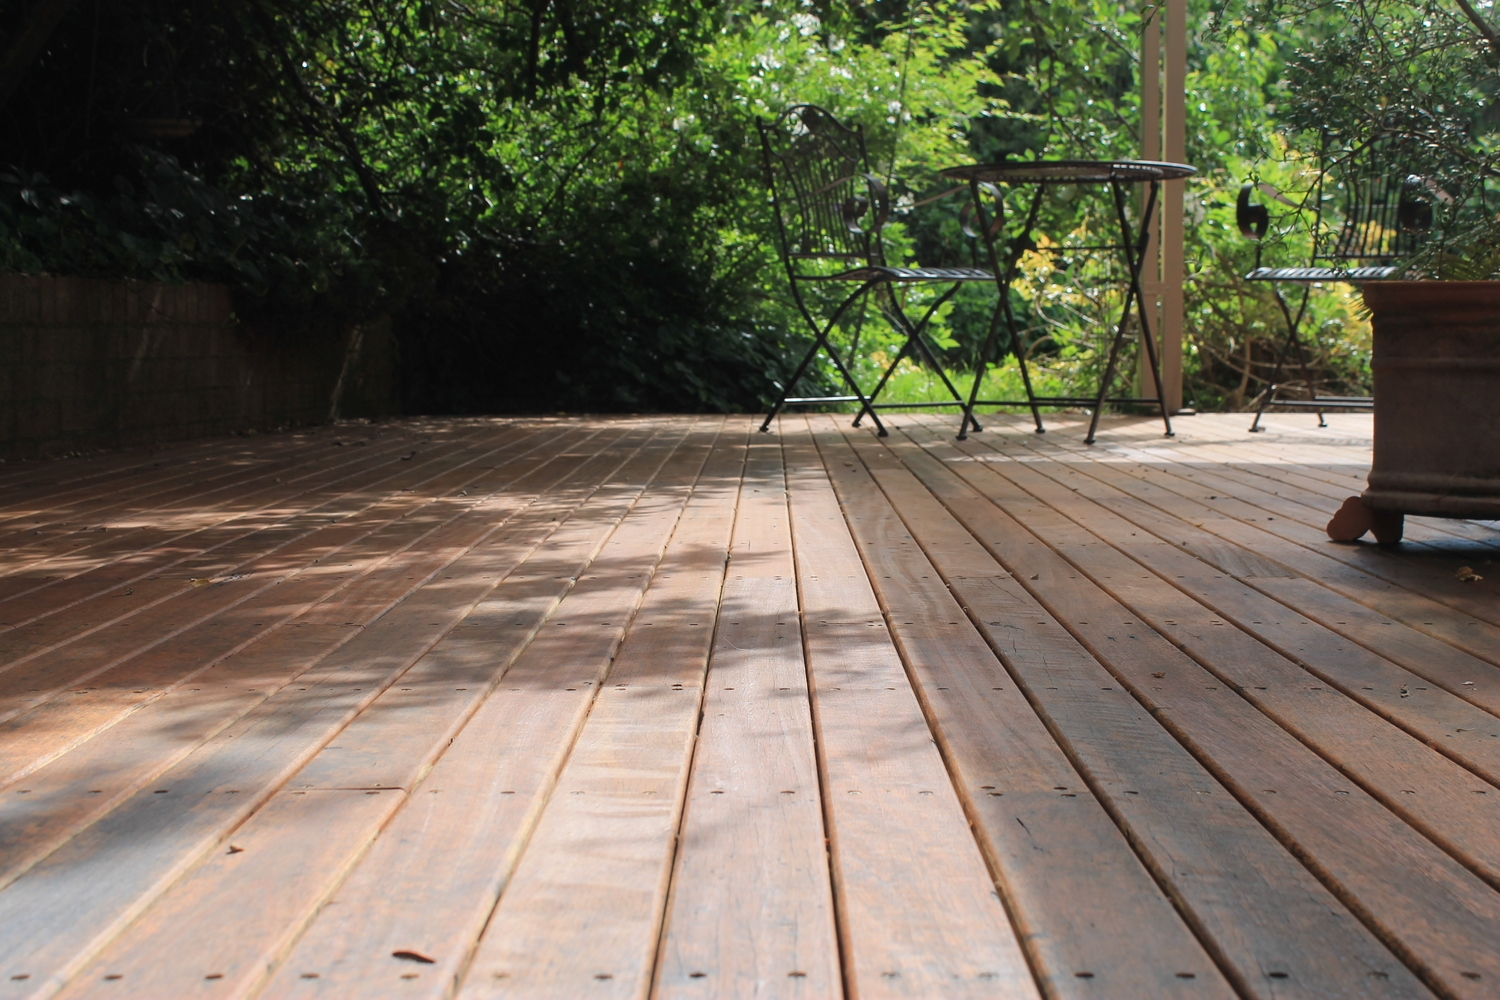 Remilled Decking made from salvaged house rafters